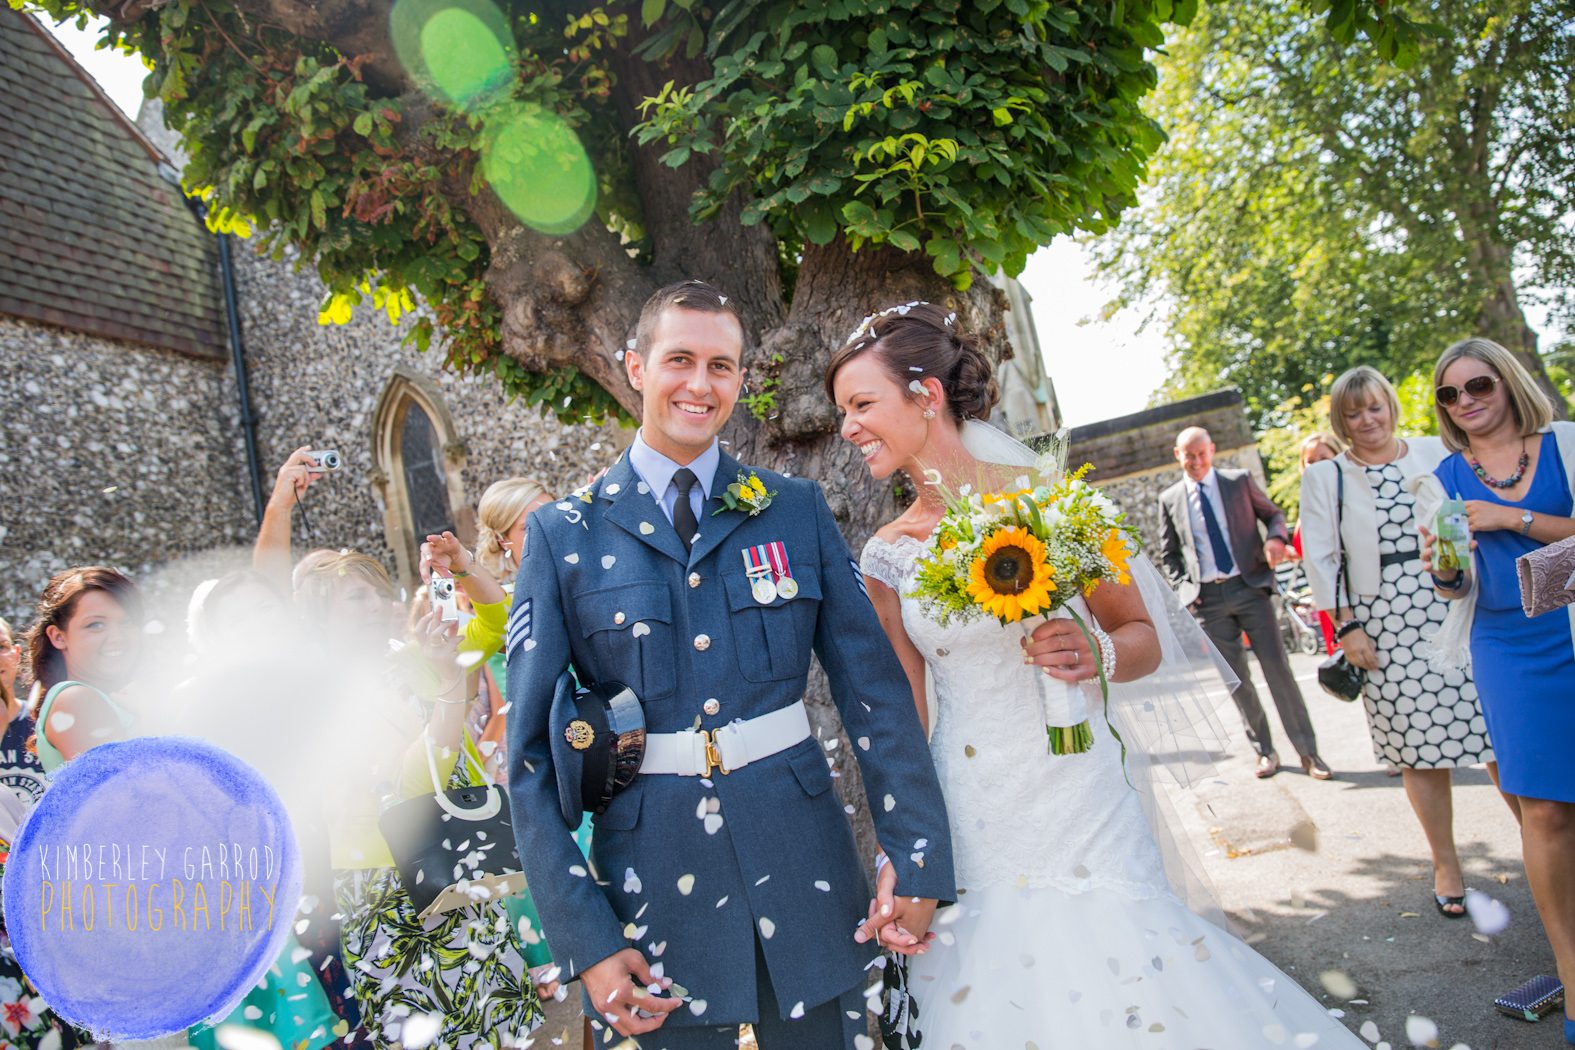 Royal Marines Museum Southsea Wedding Photographer Kimberley Garrod-8